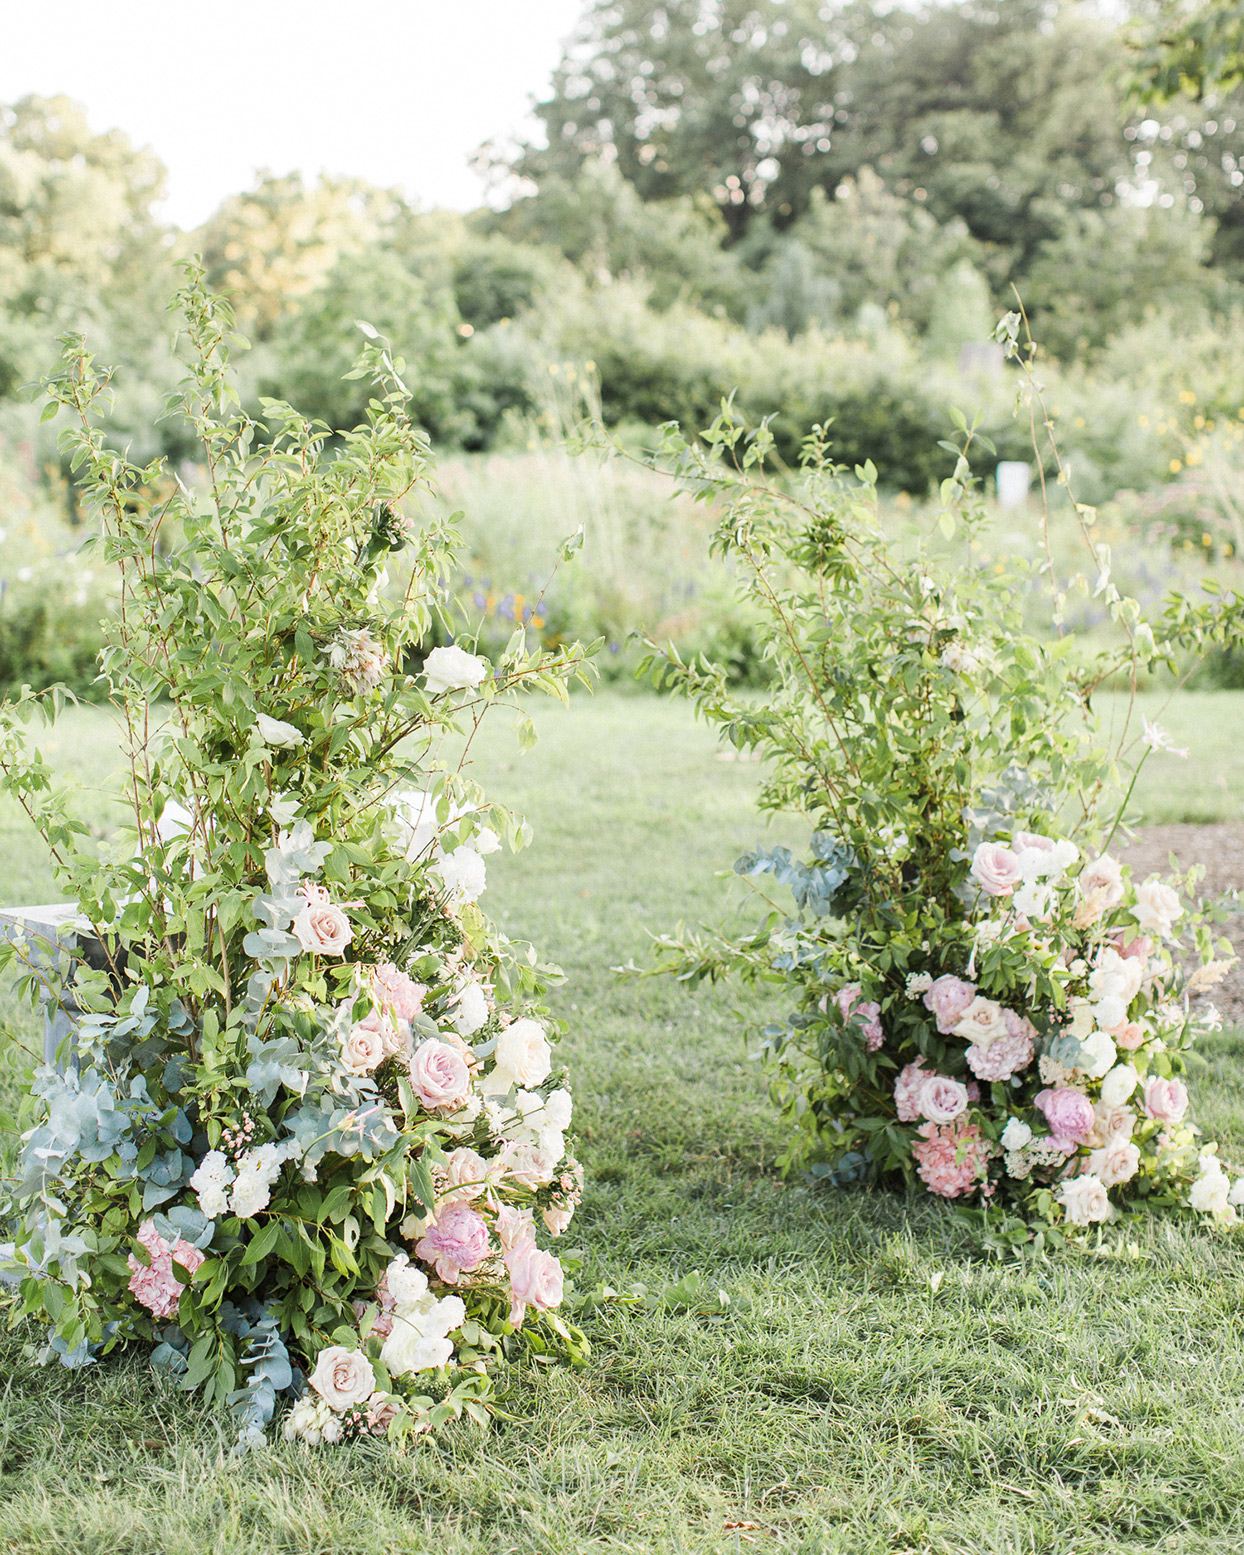 grace john wedding ceremony floral arrangements creating ceremony arch in grass